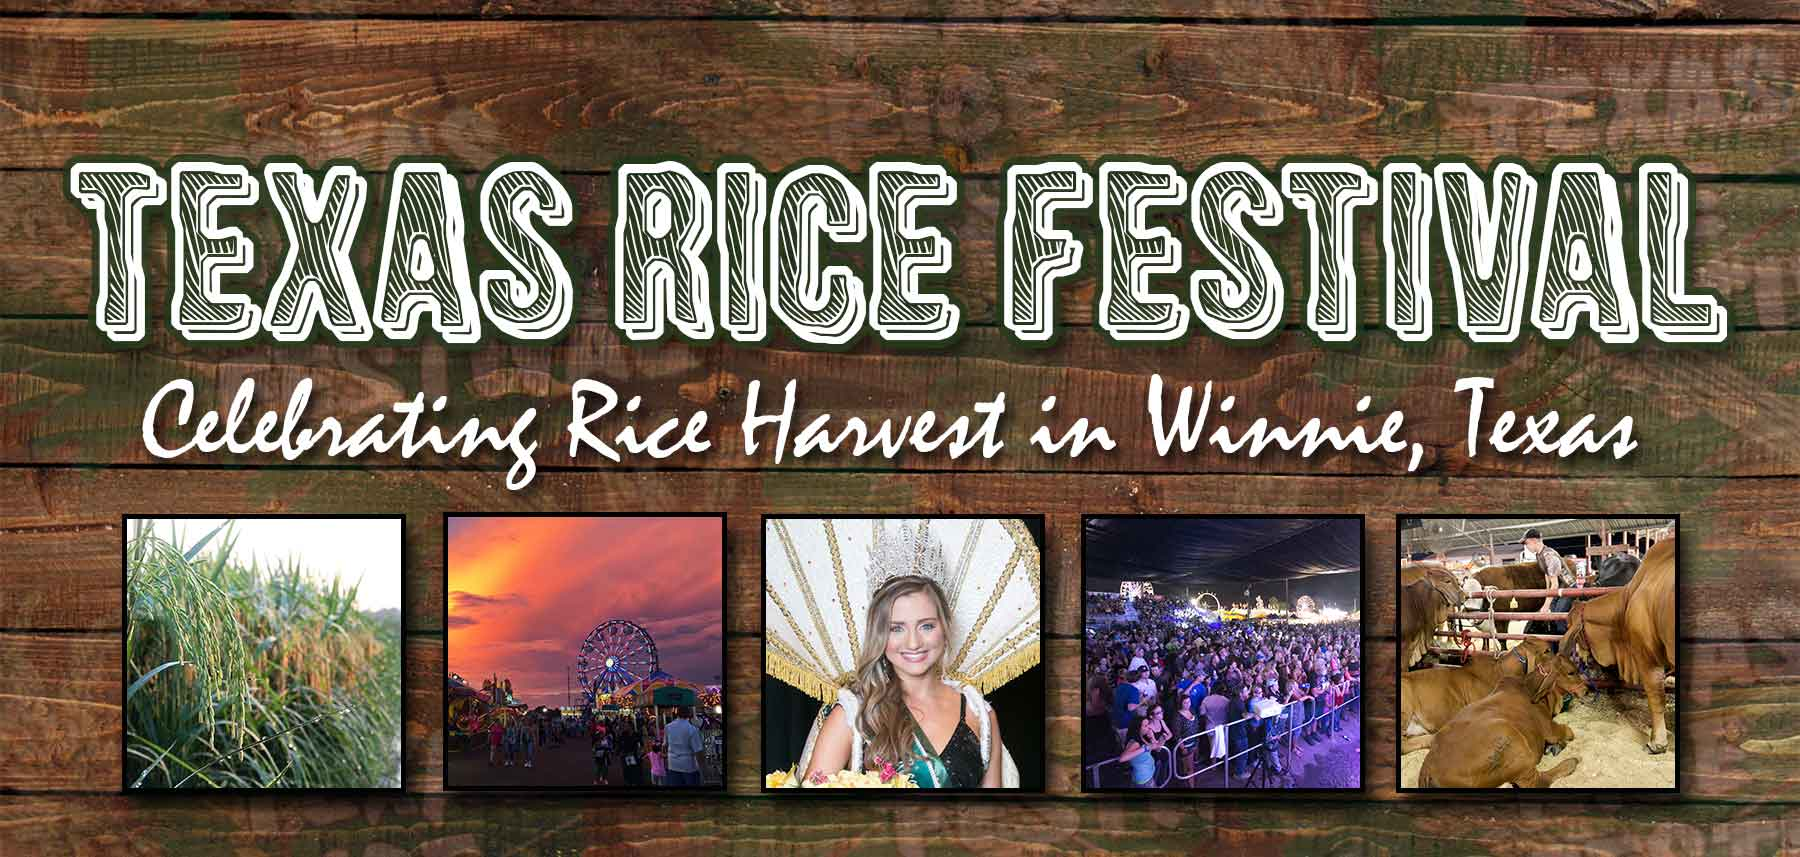 50th Annual Texas Rice Festival in Winnie, Texas